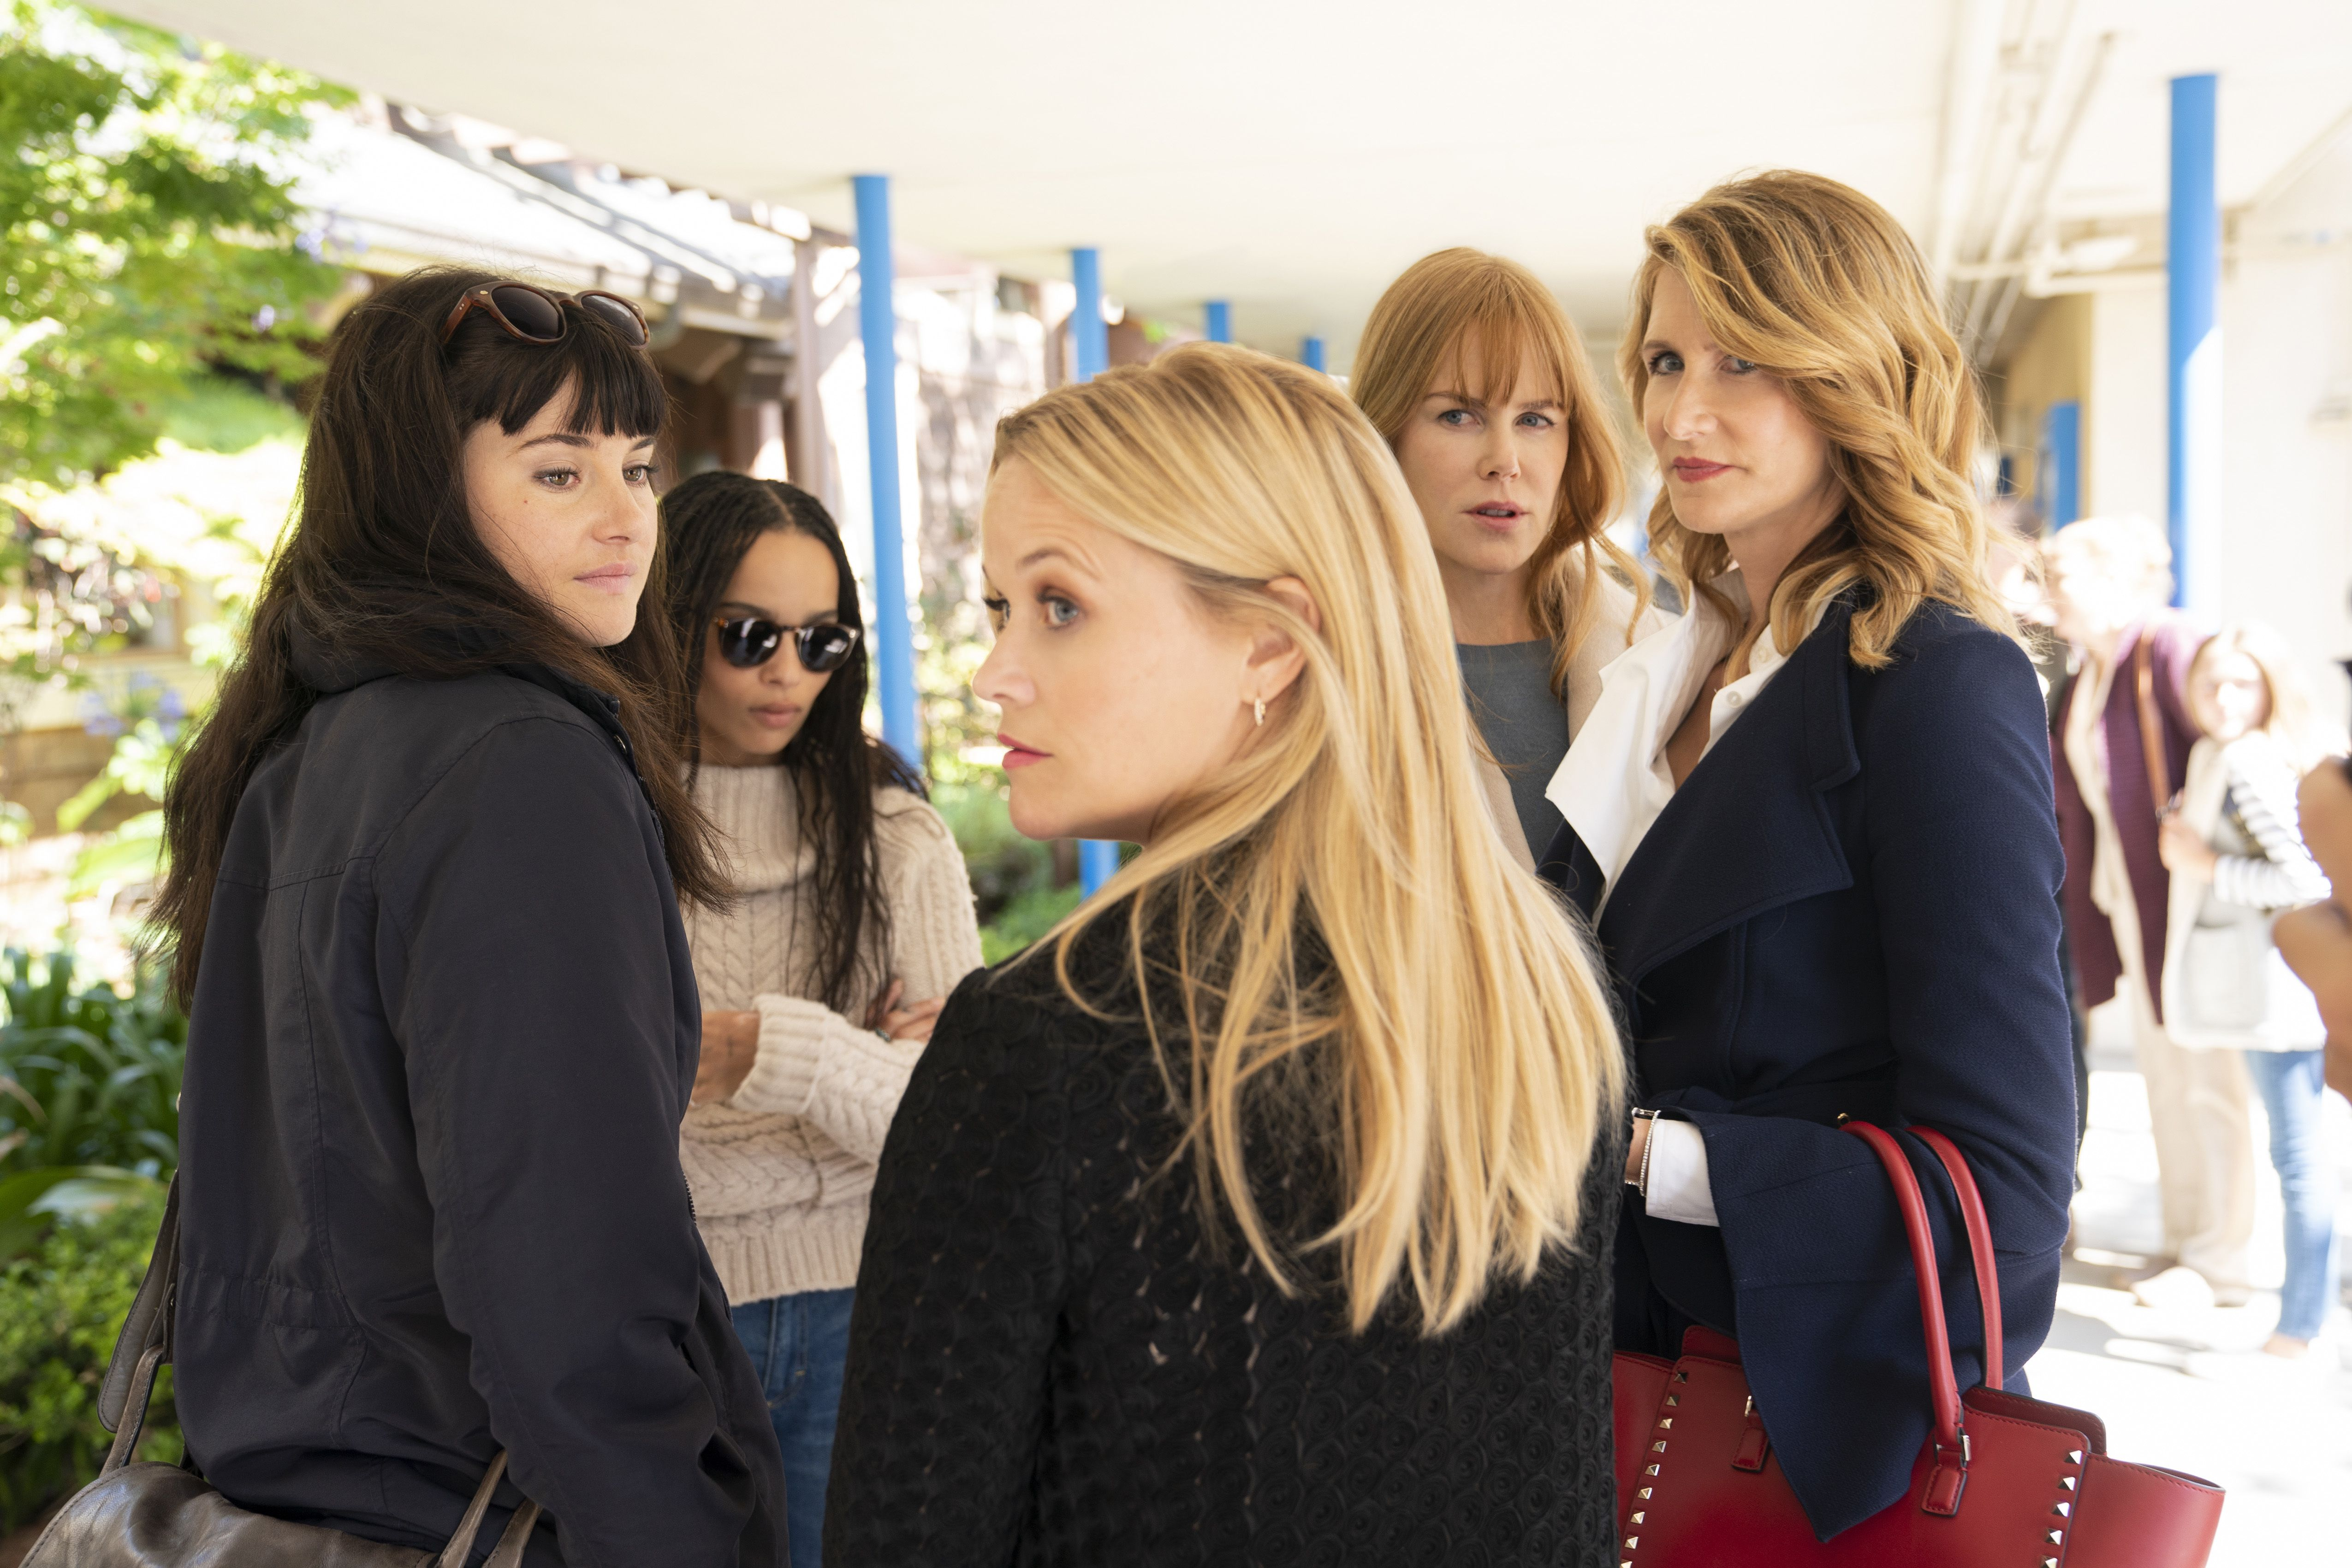 Will There Be a Big Little Lies Season 3?